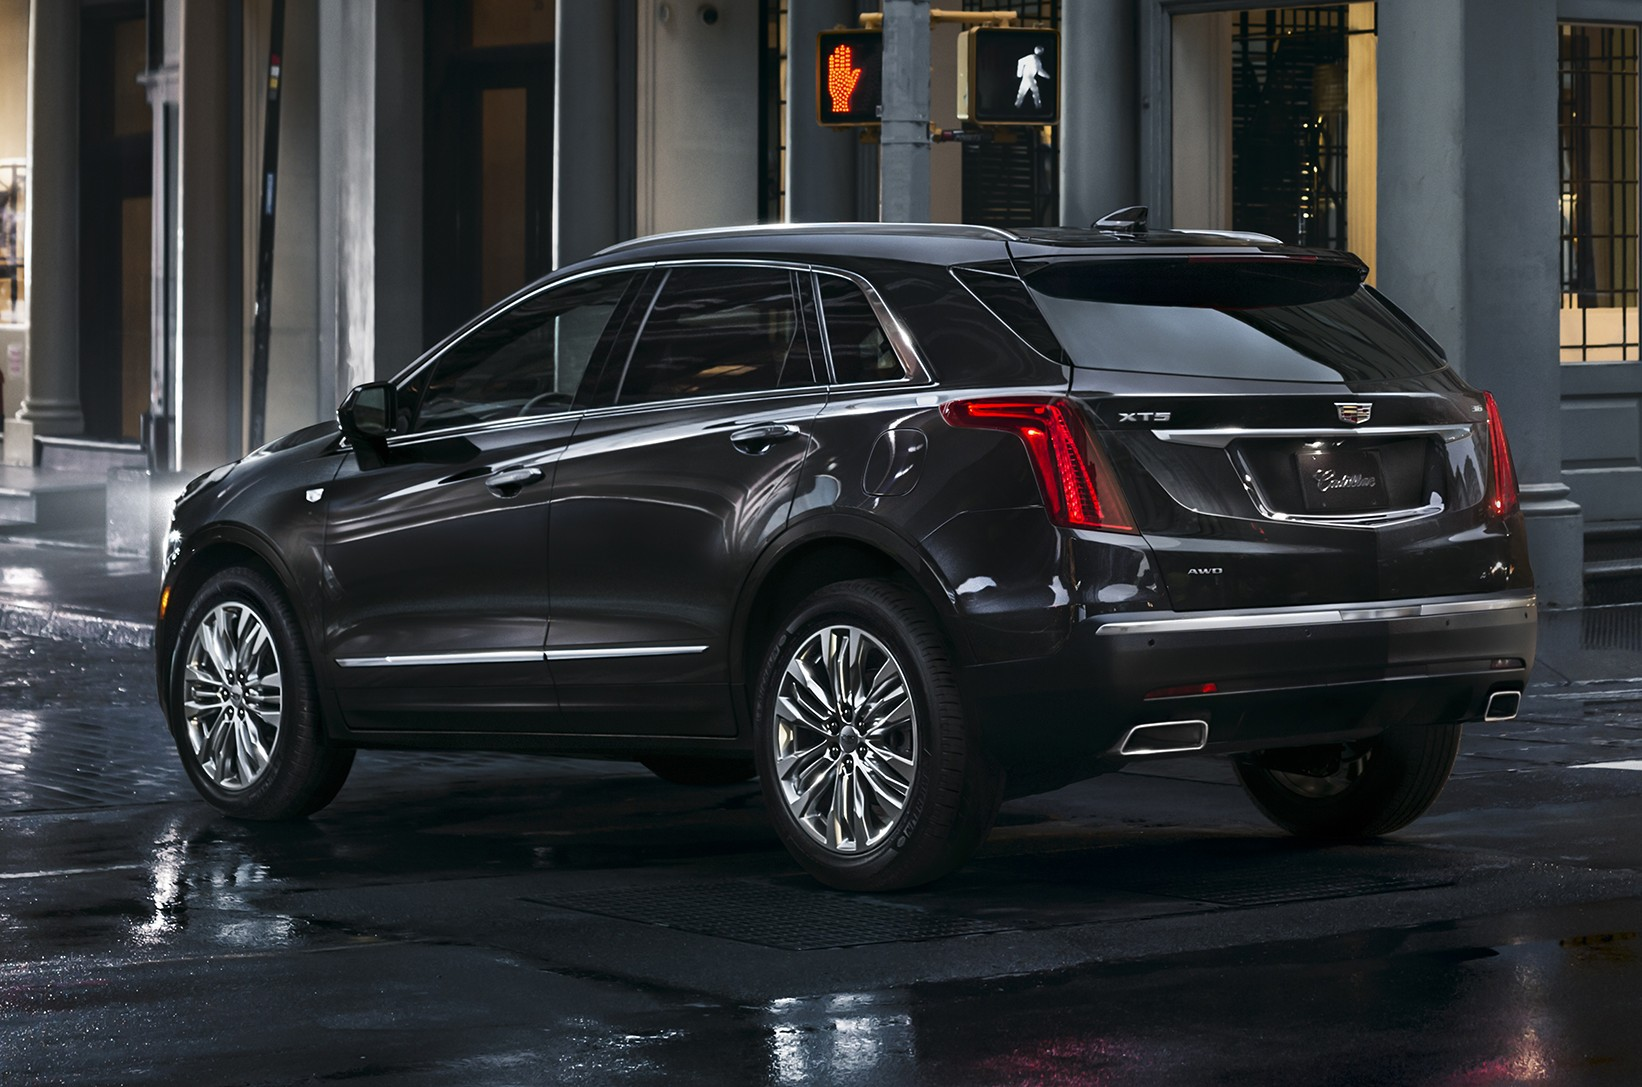 cadillac xt5 initiates new series of cadillac luxury. Black Bedroom Furniture Sets. Home Design Ideas